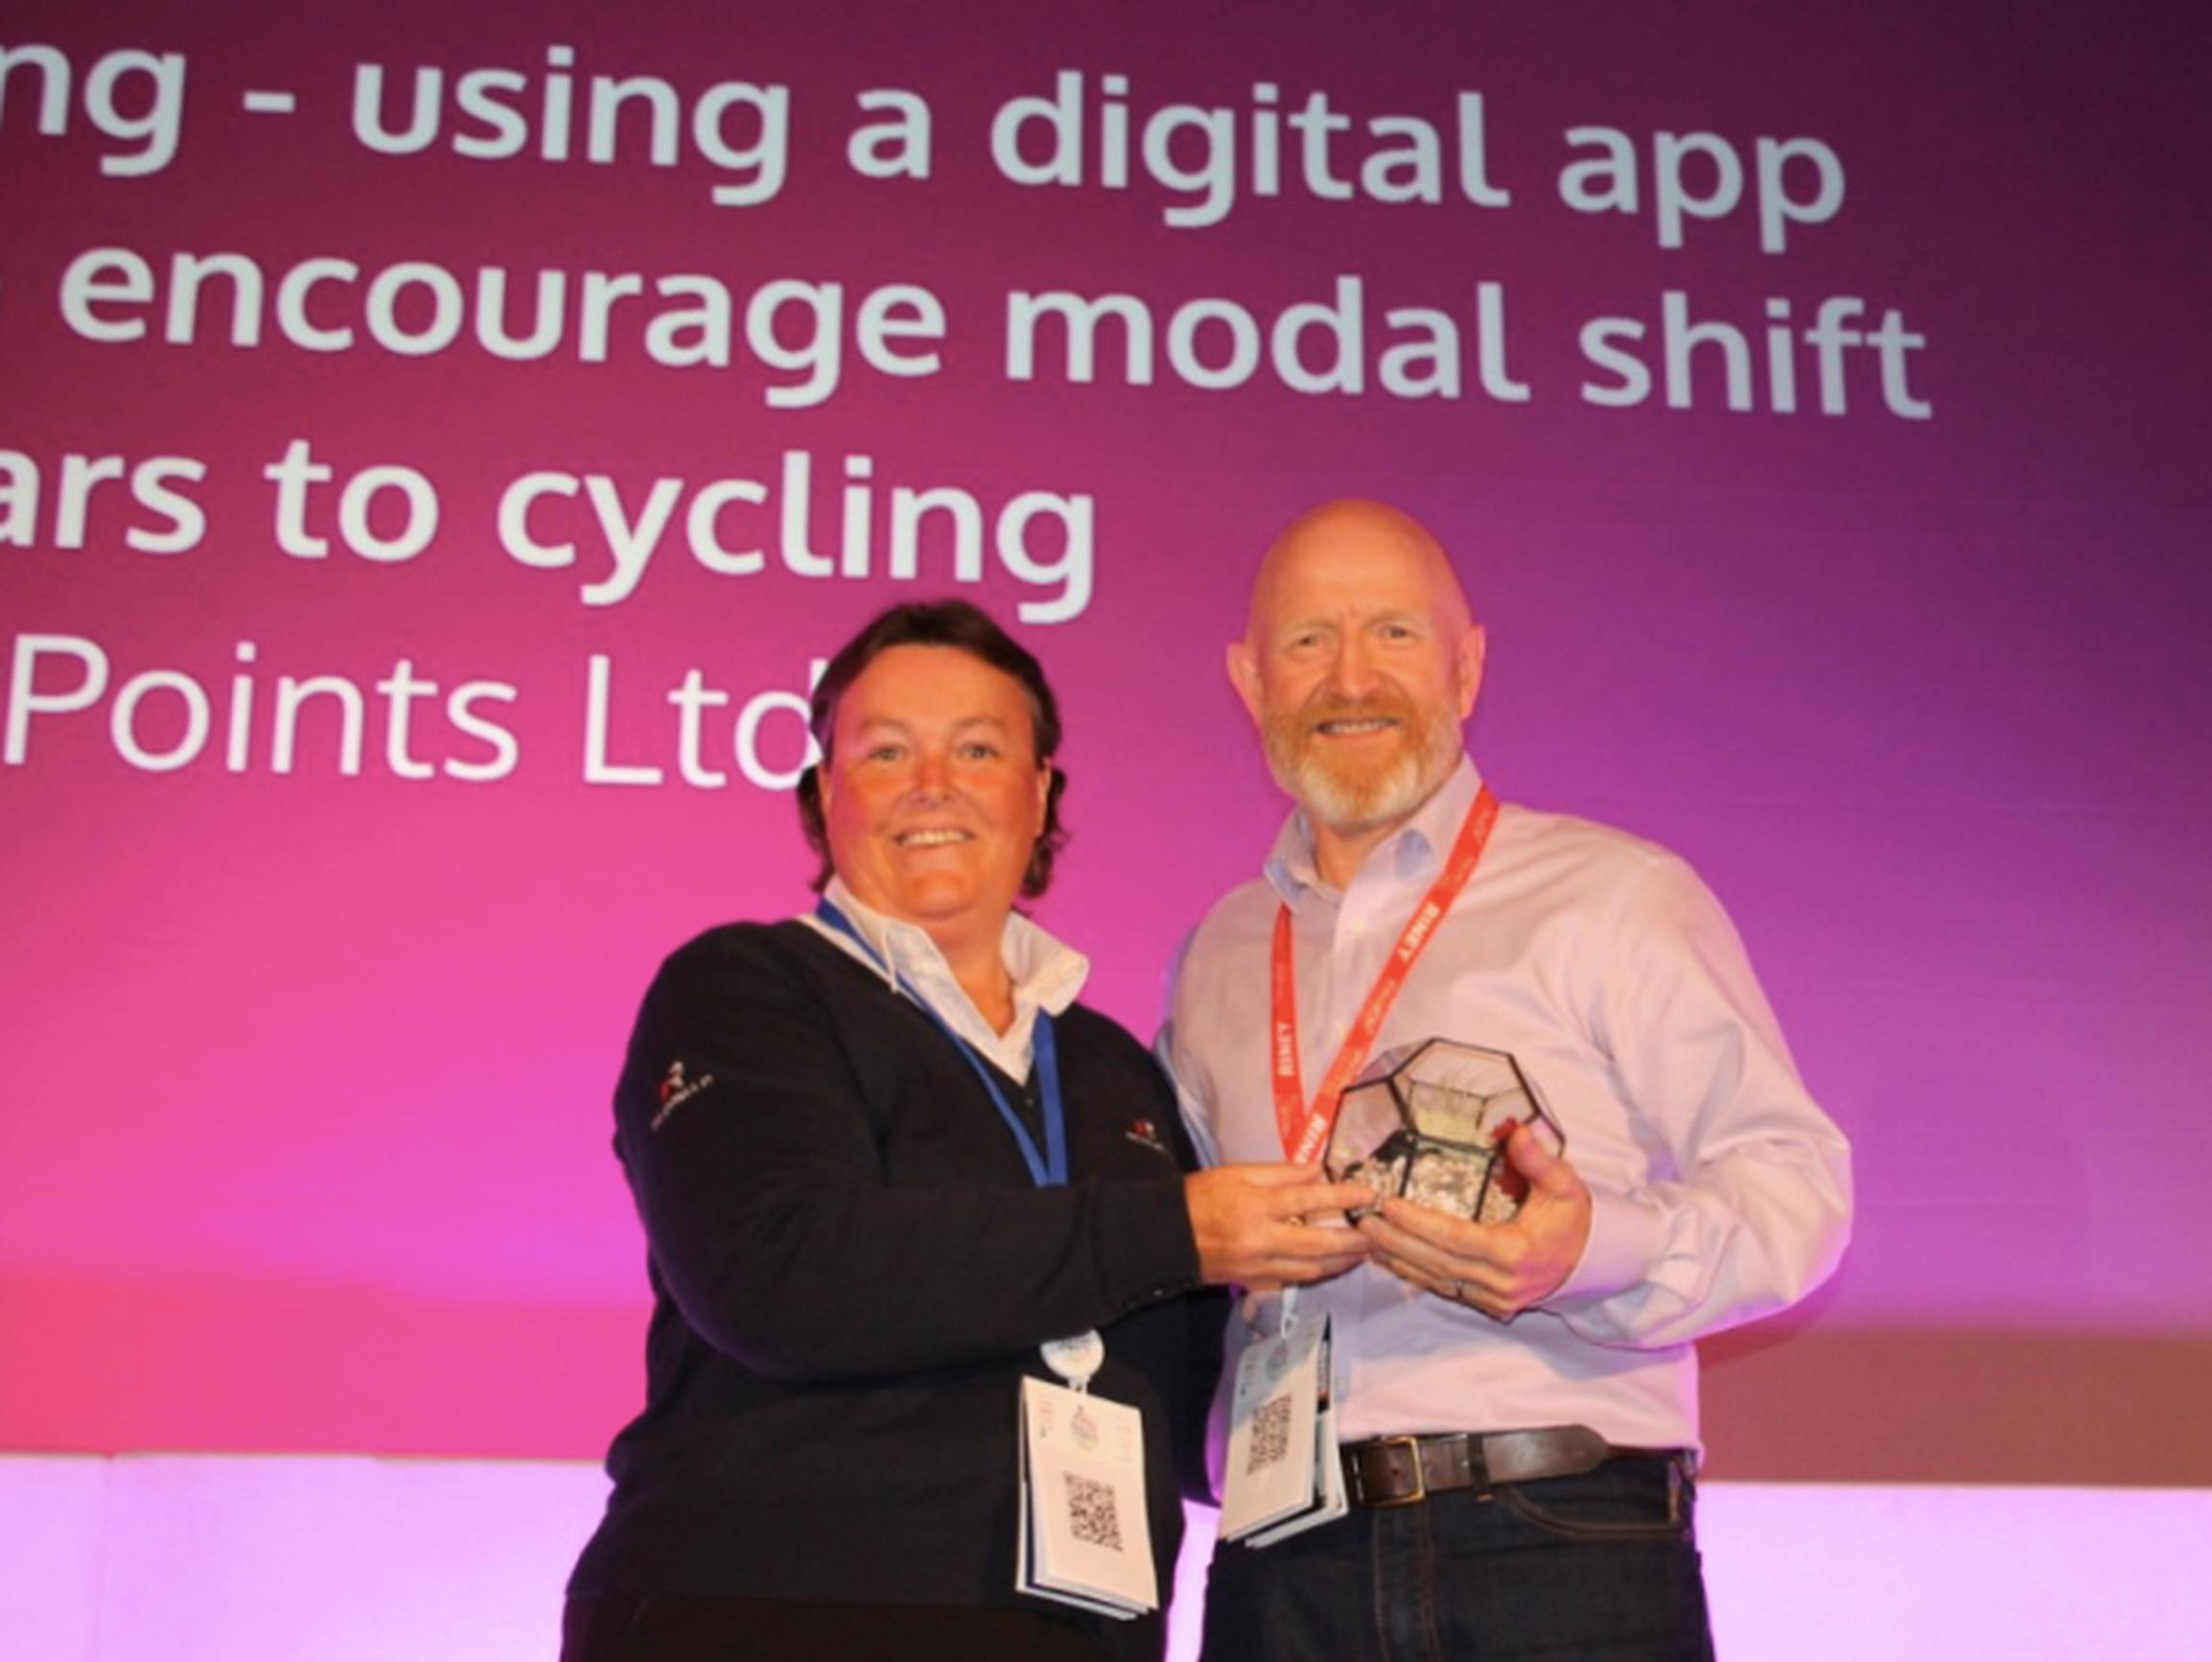 BetterPoints Ltd picked up the Best Modal Shift Award